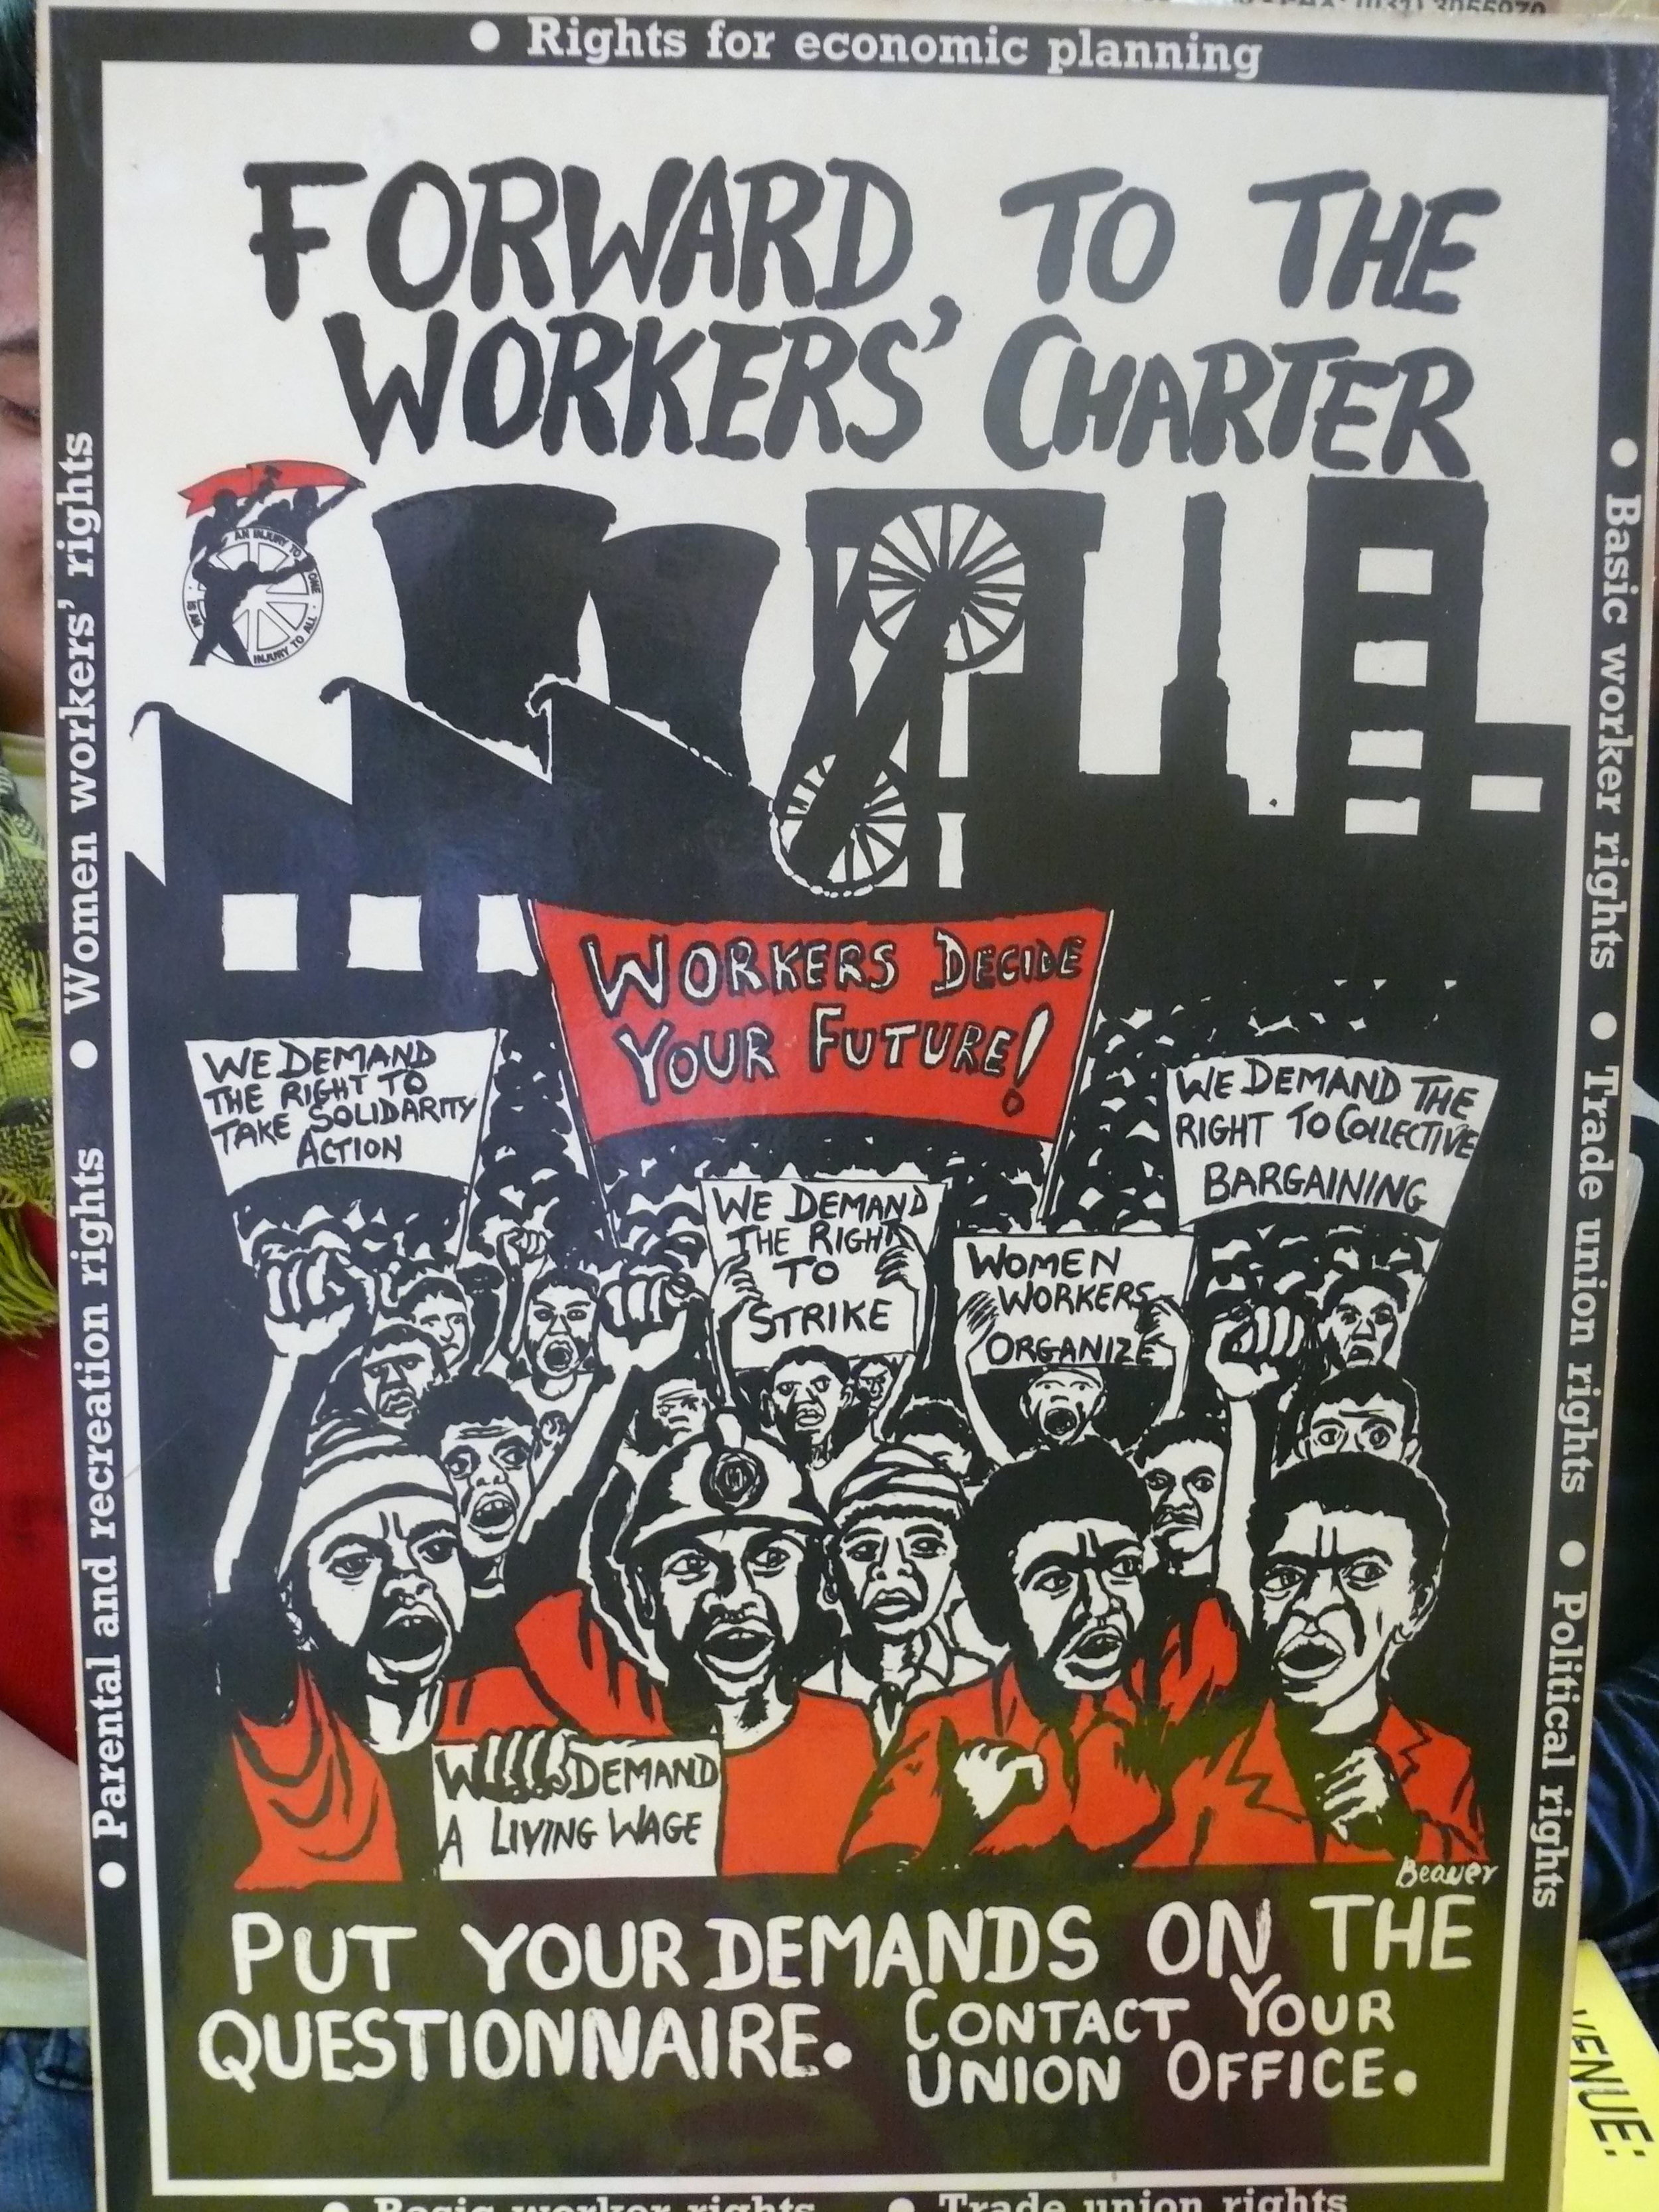 Poster from the Workers' Charter, which Monroe cites as a highlight of his time in the TWIU